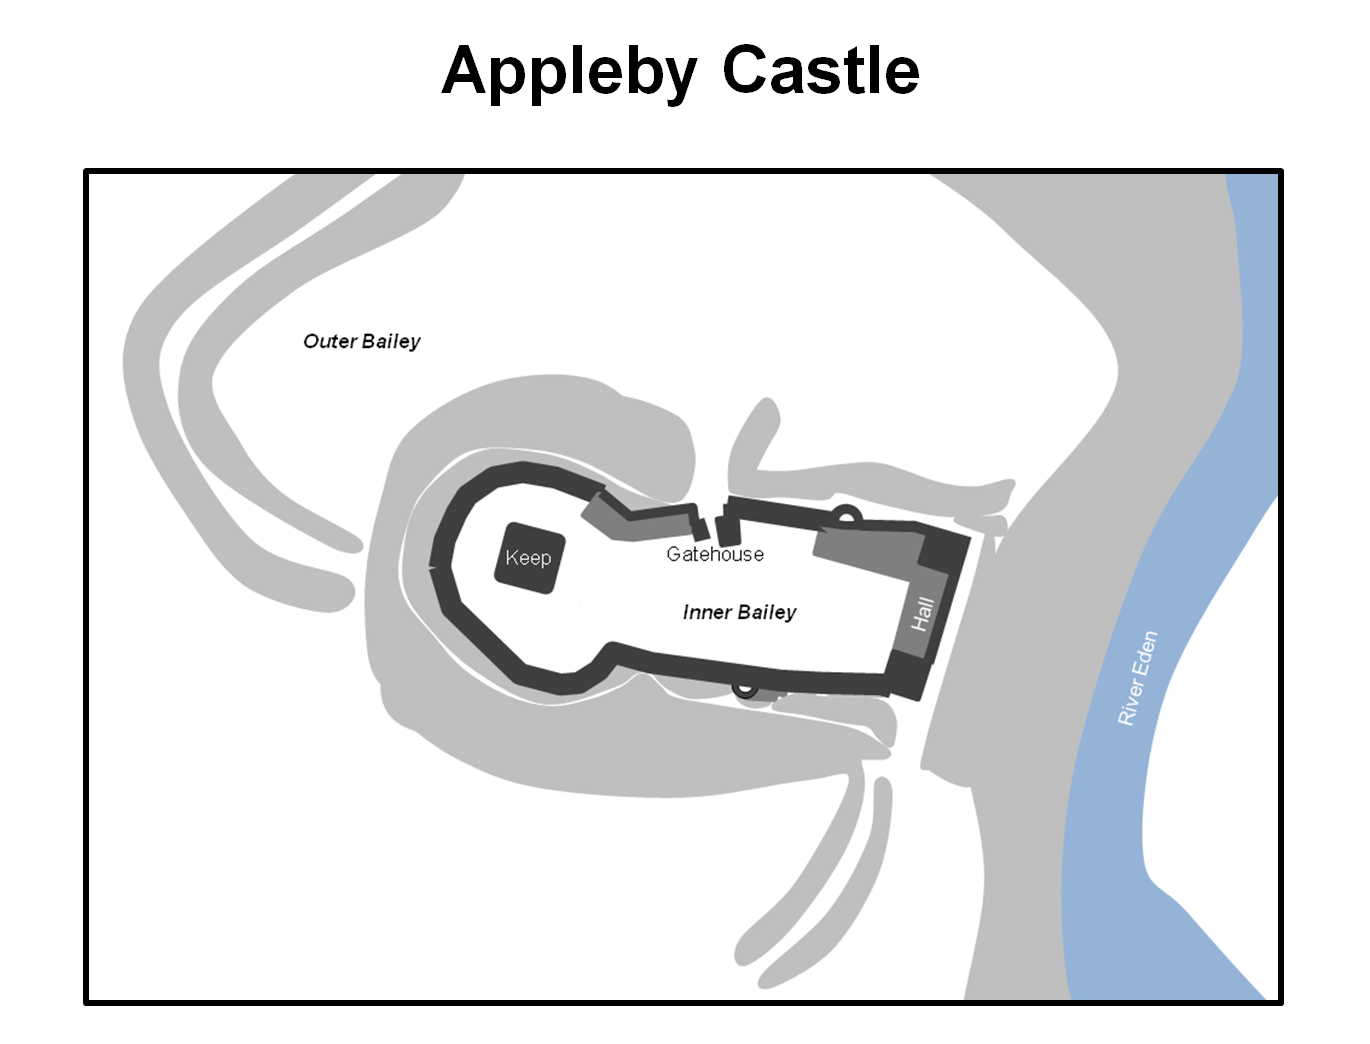 Appleby castle north west england castles forts and battles appleby castle layout the castle was originally a ringwork and bailey fortification a stone keep was built within the ringwork during the twelfth century pooptronica Images